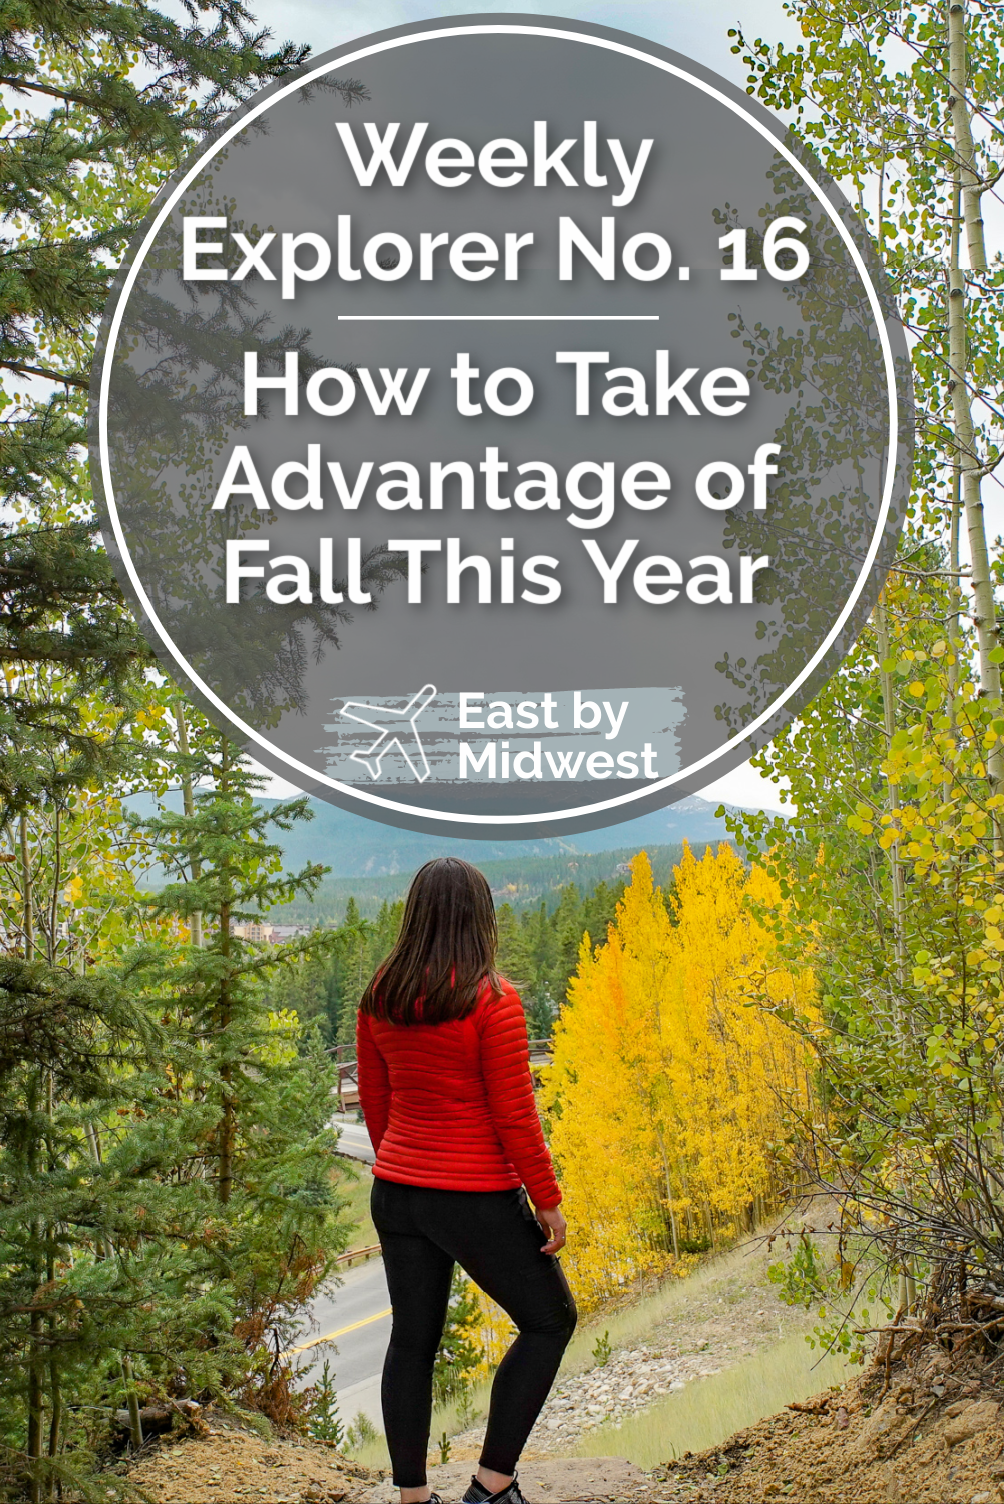 Weekly Explorer No. 16: How to Take Advantage of Fall This Year